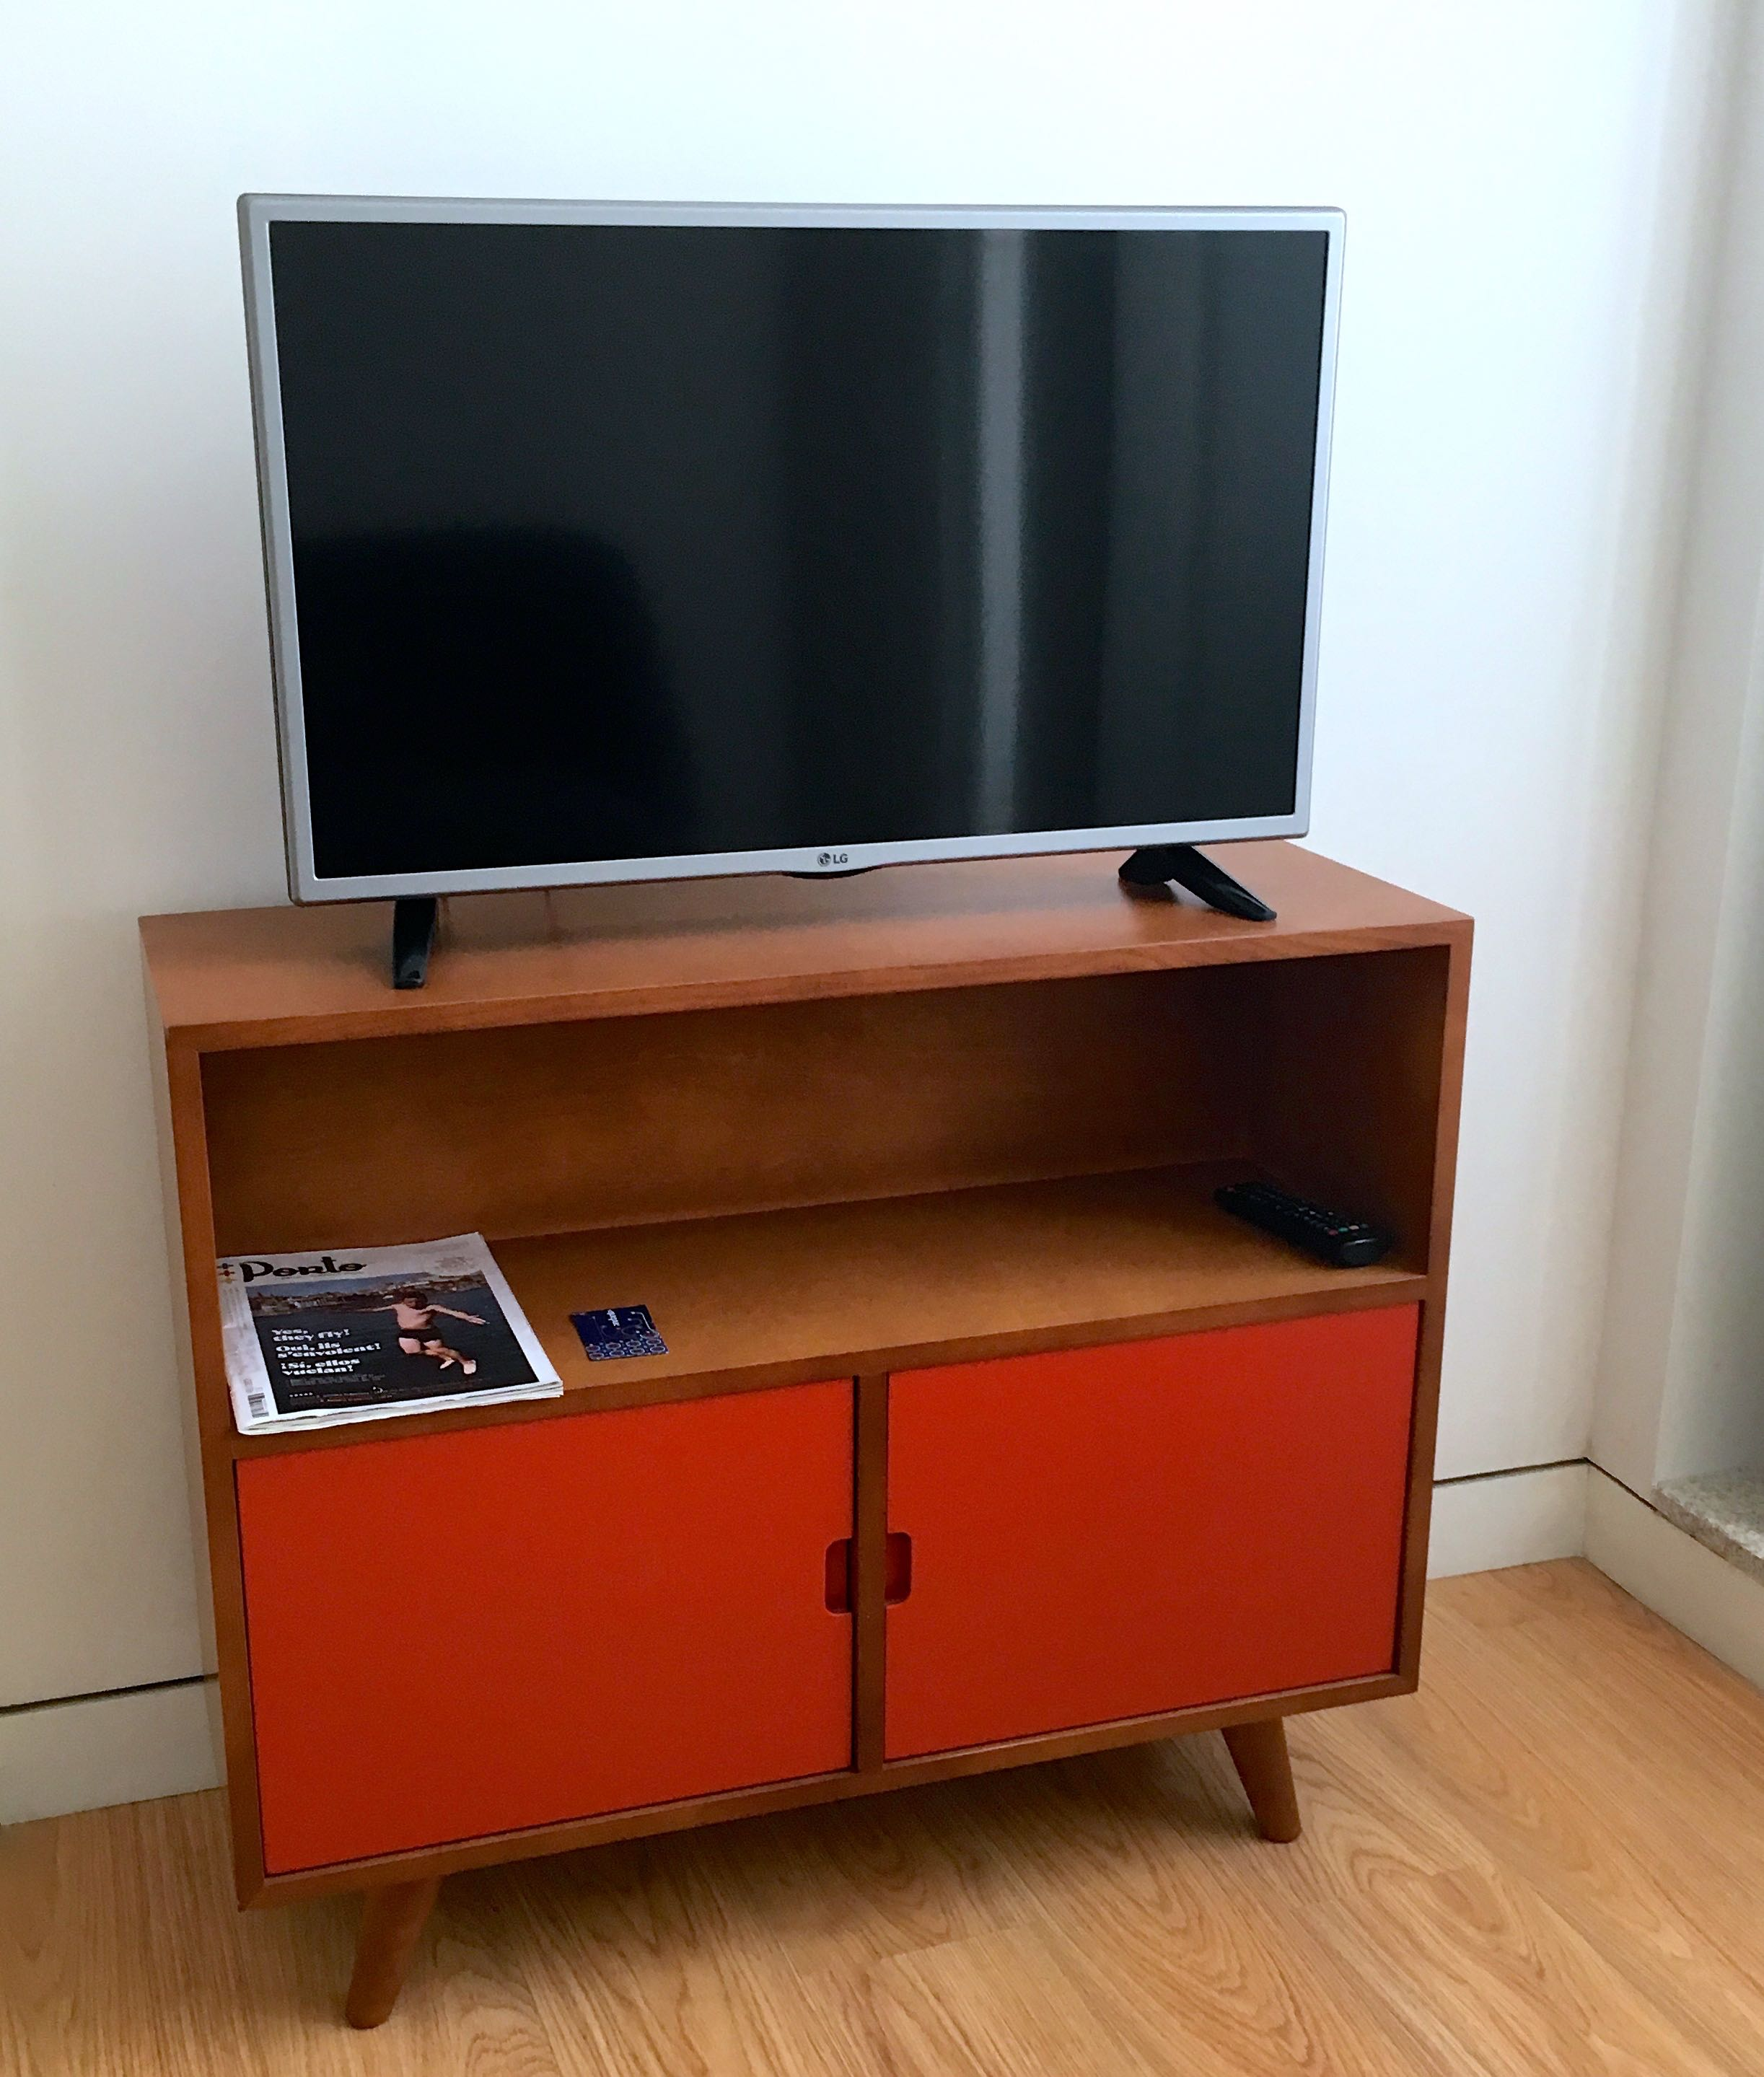 mid century modern furniture - I'm not usually a fan - but it really worked here